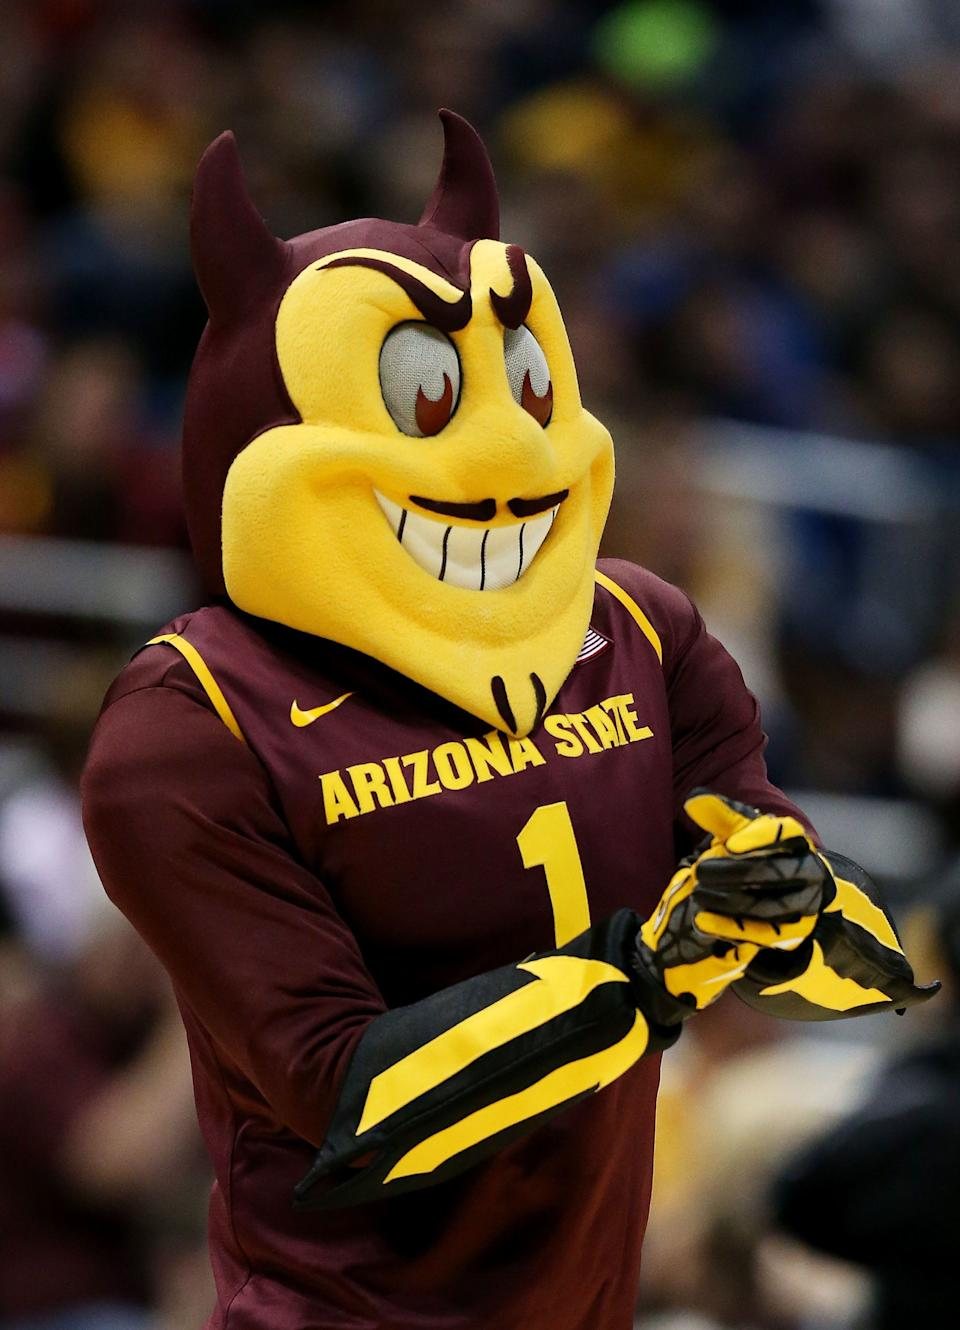 MILWAUKEE, WI - MARCH 20:  Arizona State Sun Devils mascot Sparky looks on in the second half against the Texas Longhorns during the second round of the 2014 NCAA Men's Basketball Tournament at BMO Harris Bradley Center on March 20, 2014 in Milwaukee, Wisconsin.  (Photo by Jonathan Daniel/Getty Images)